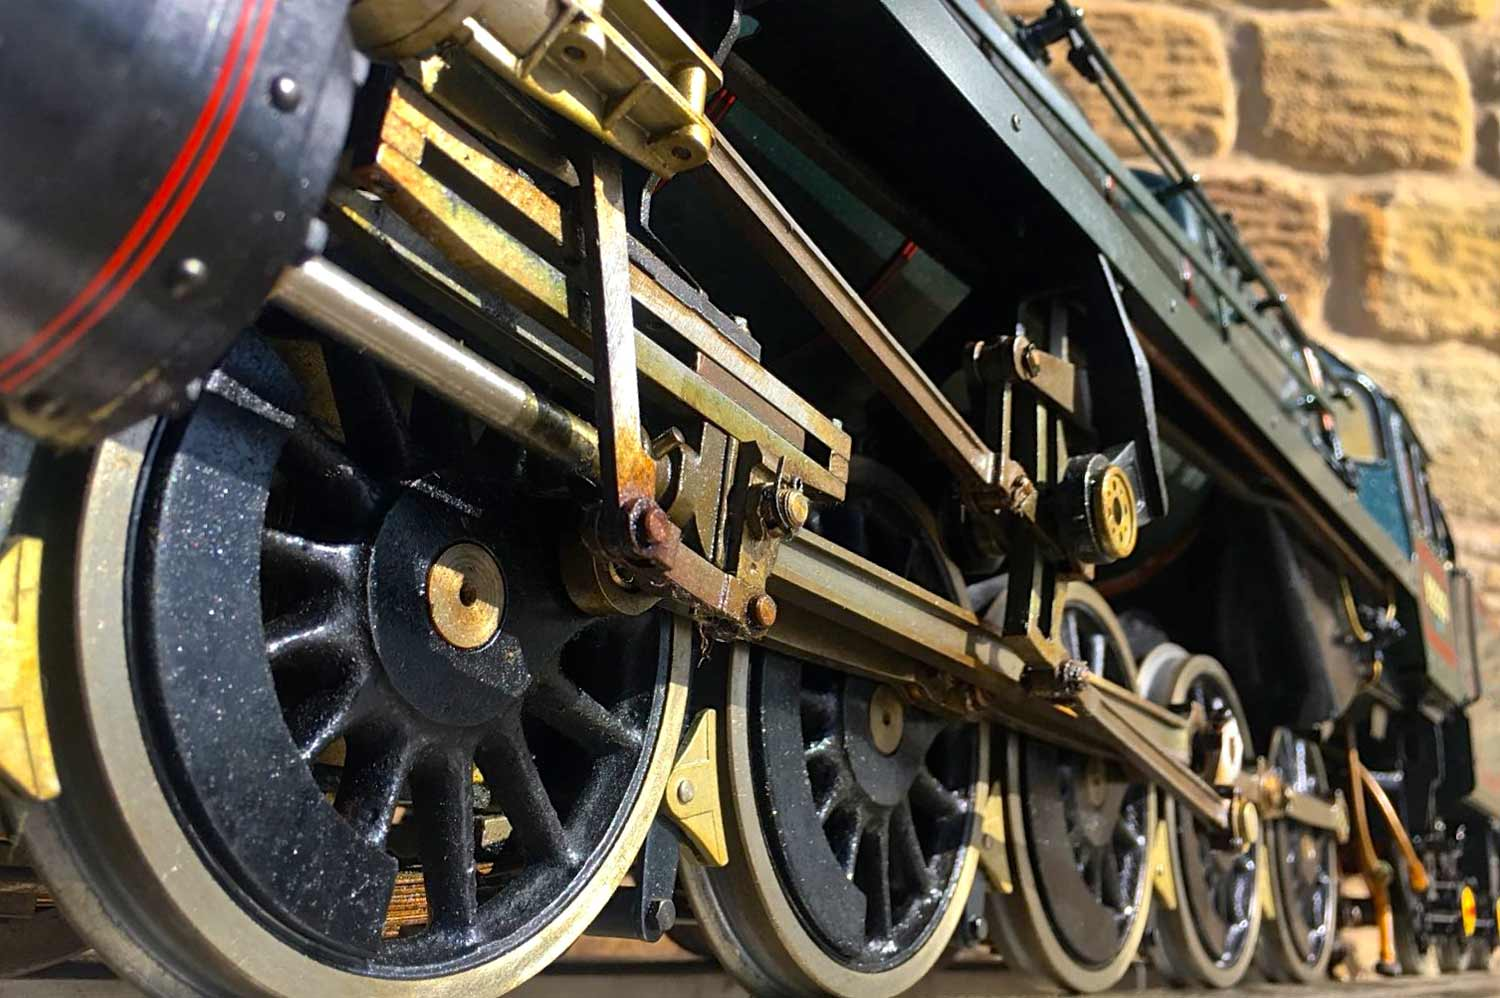 test 3-and-a-half-inch-BR-9F-OS-live-steam-locomotive-for-sale-07